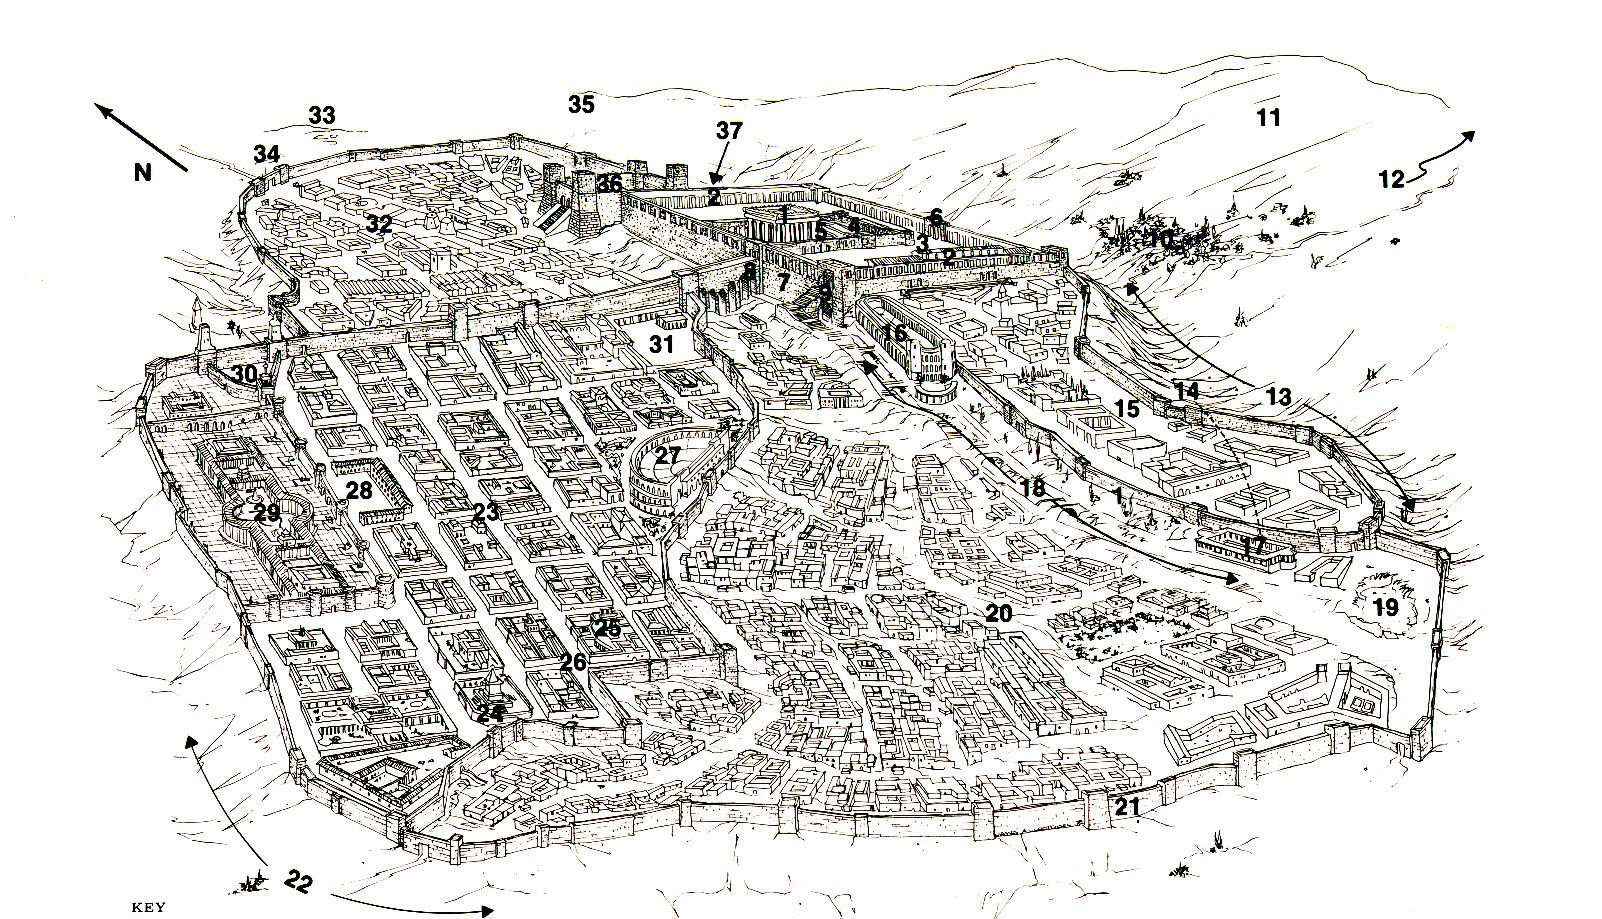 Jerusalem At The Time Of Jesus 1 The Temple 2 Southern Wall And Royal Stoa 11 The Mount Of